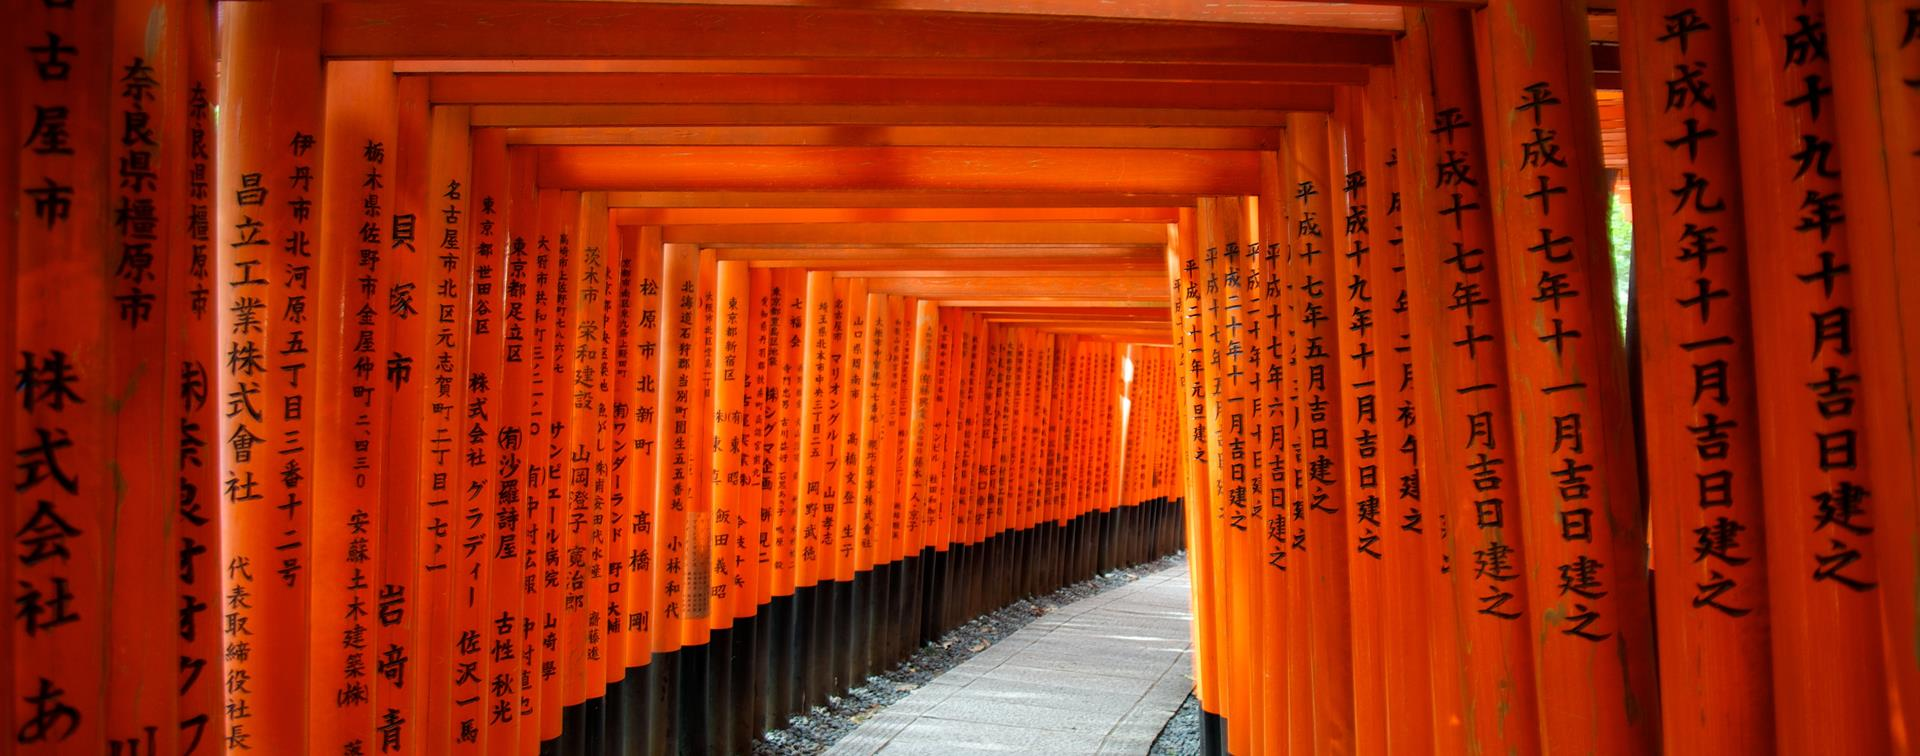 The orange Torii Gates in Japan, with black lettering on them.